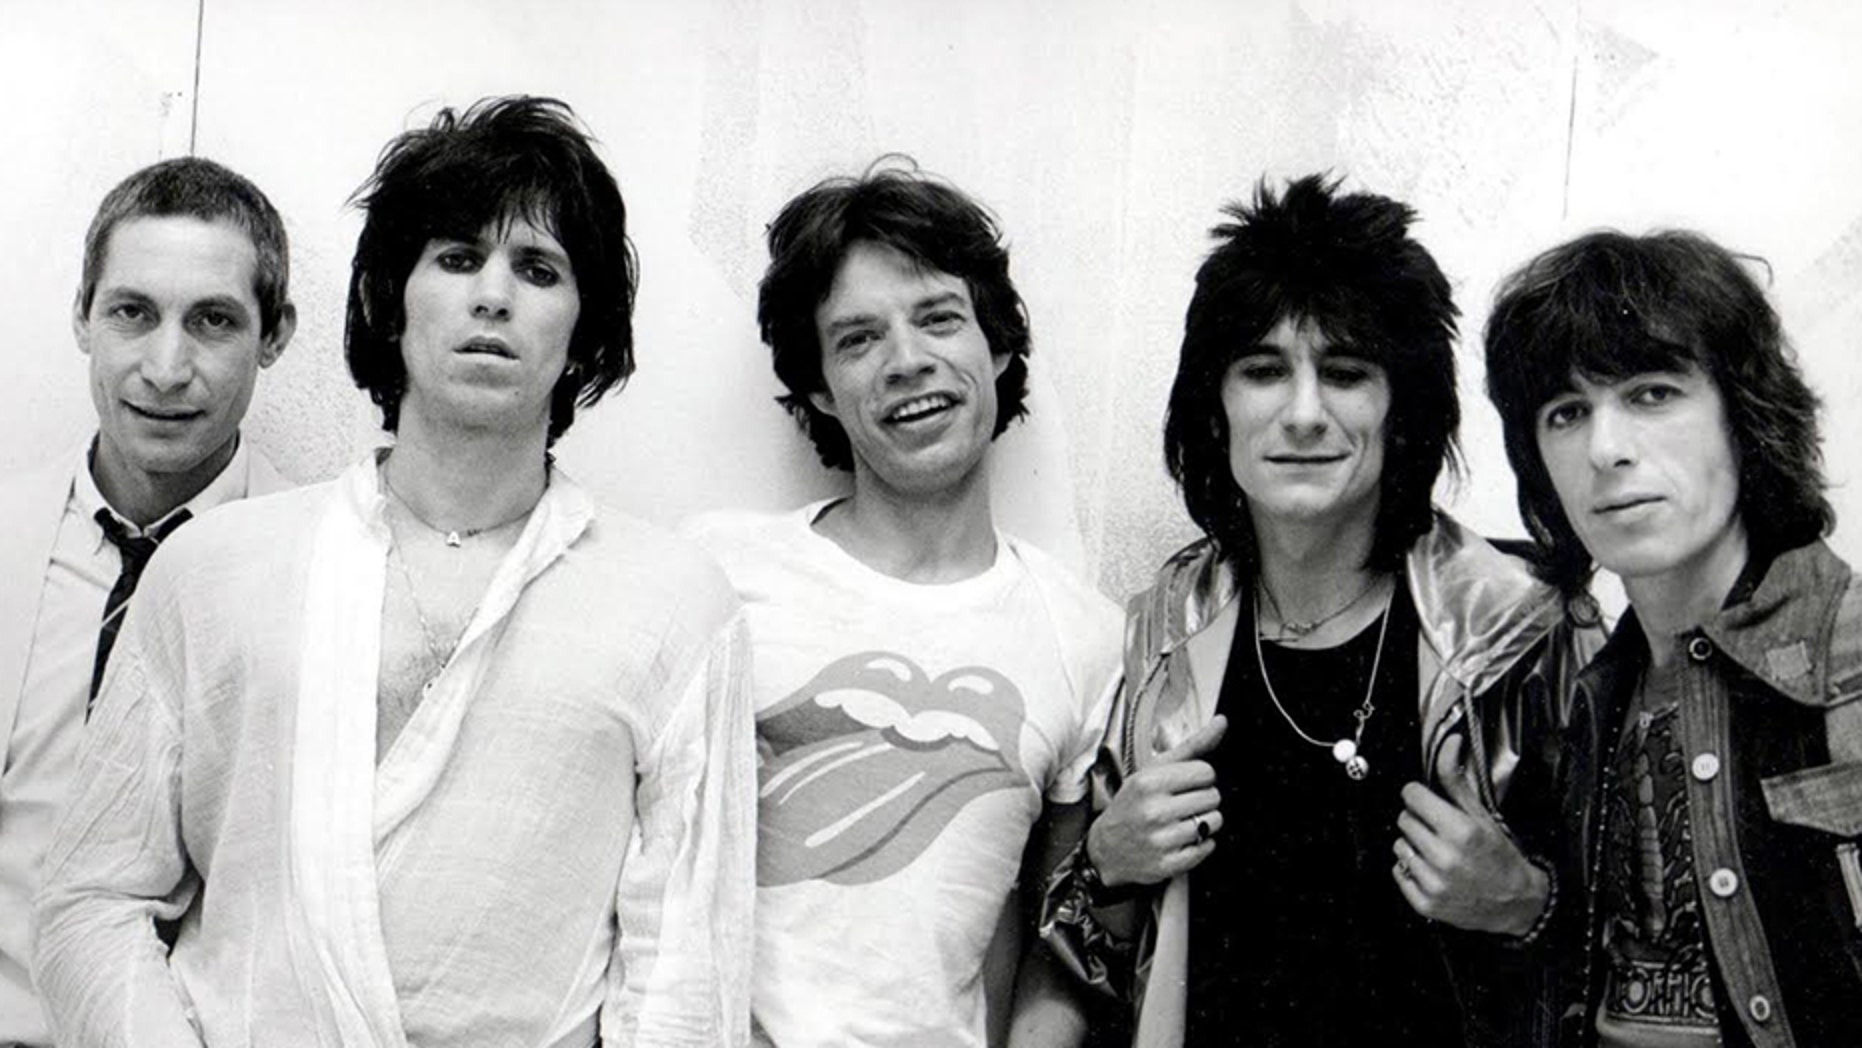 Mick Jagger and Keith Richards had no trouble entering Studio 54 for free, but their other bandmates had to pay.